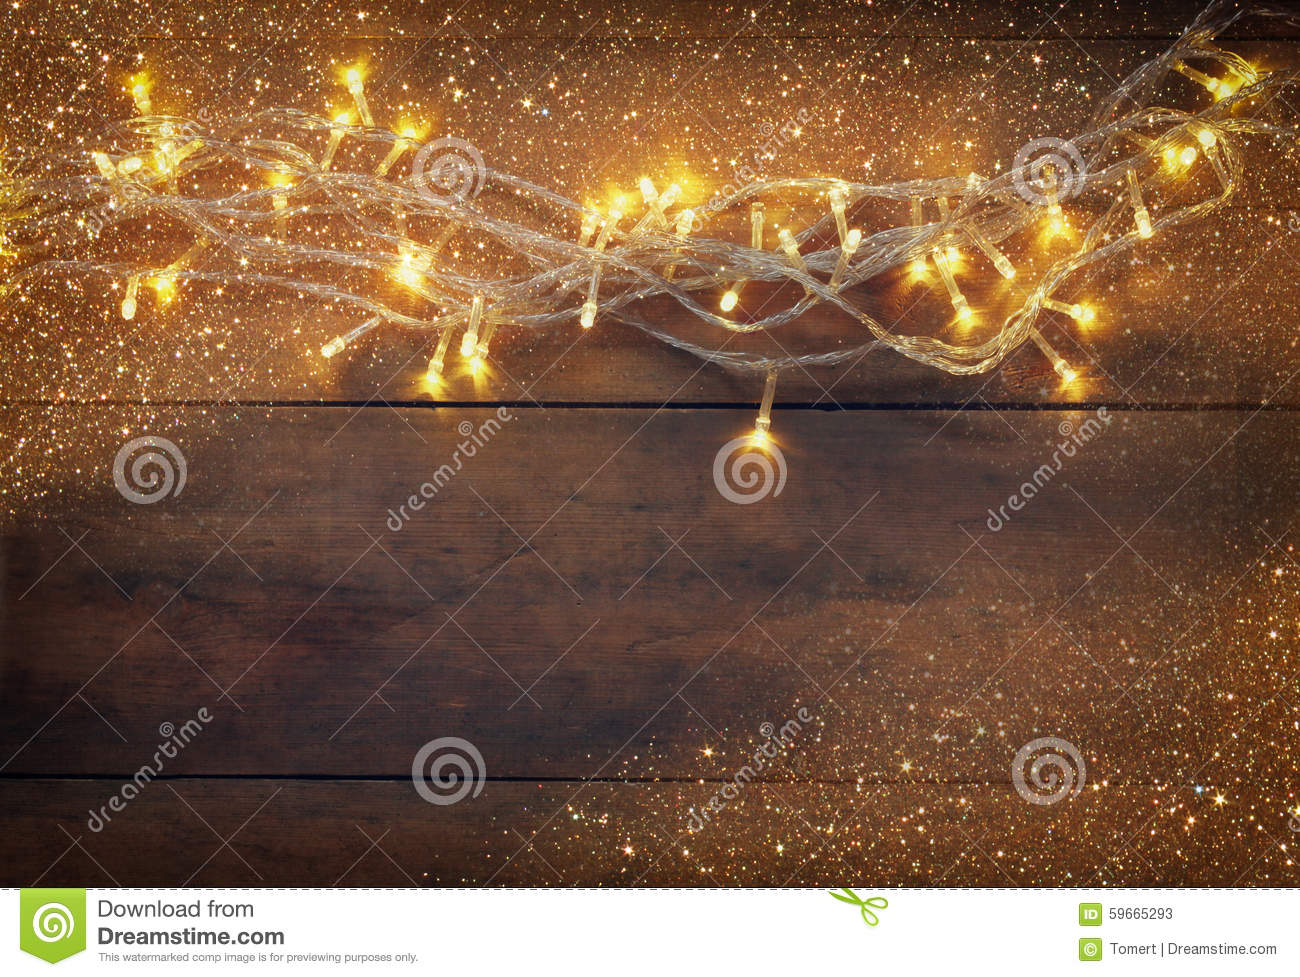 Christmas Warm Gold Garland Lights On Wooden Rustic Background.